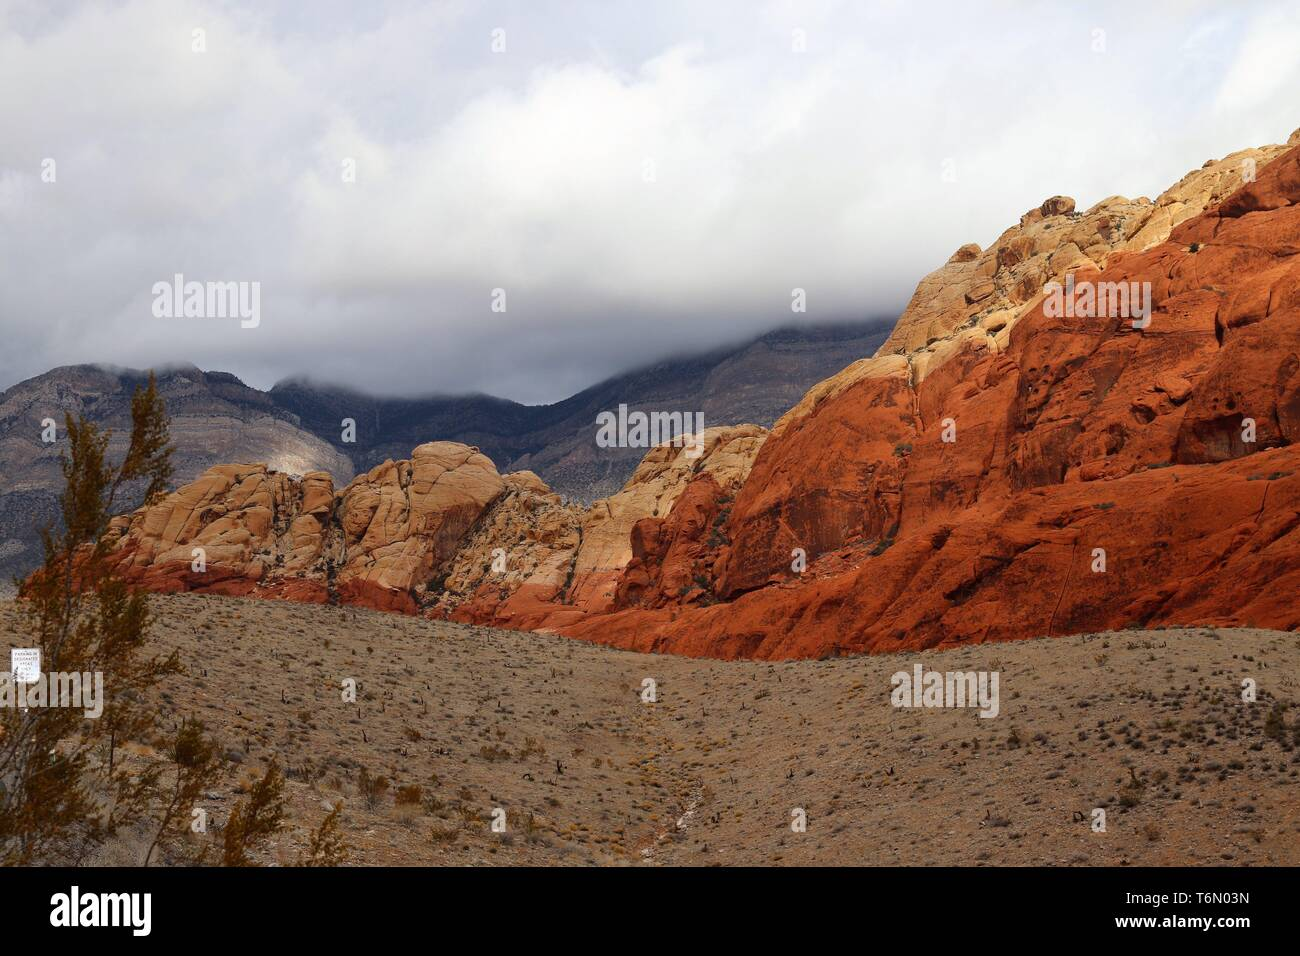 Red Rock Canyon Scenery - Stock Image